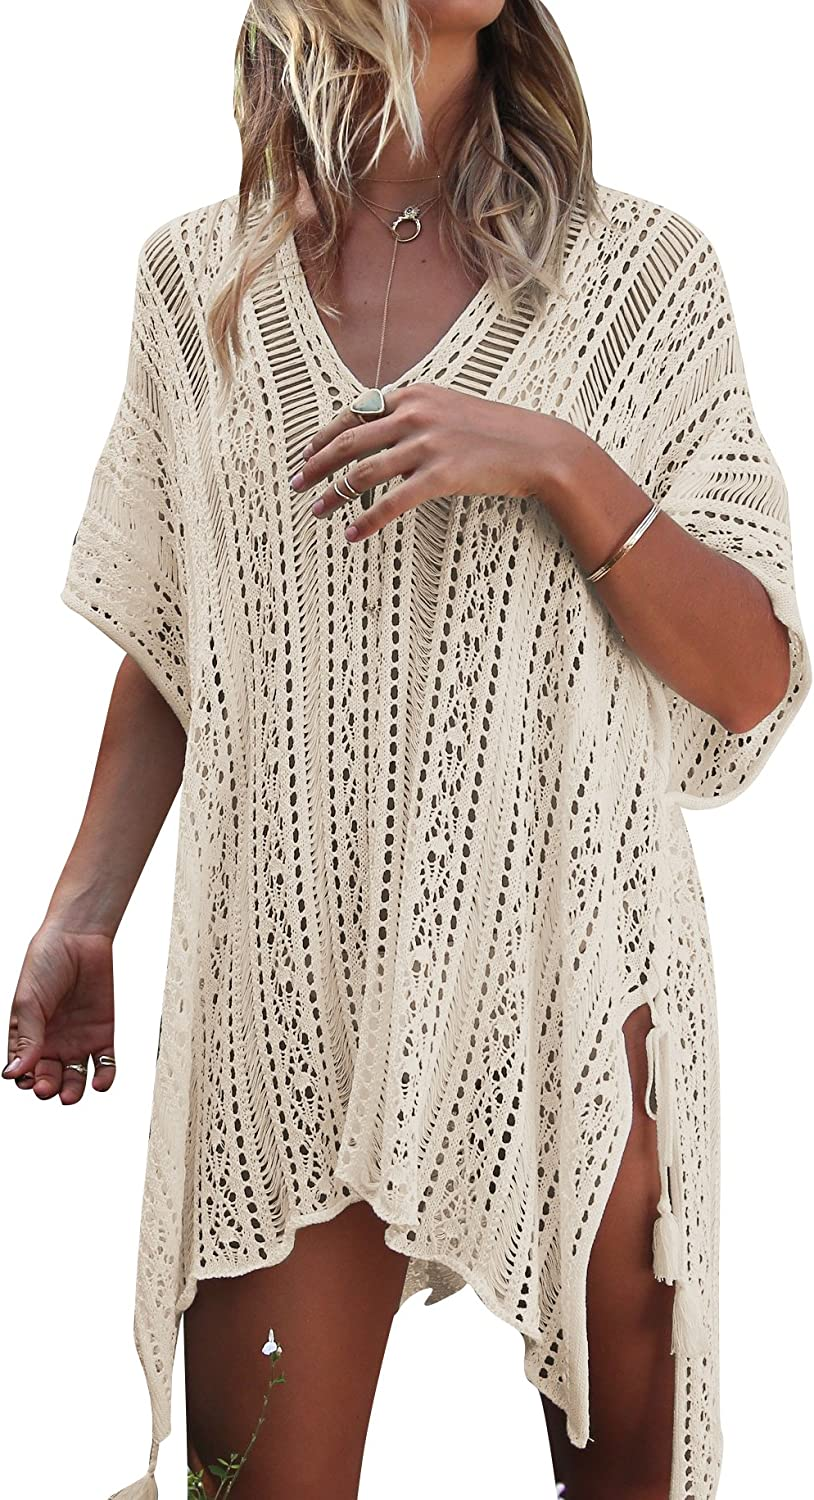 Womens Cotton Crochet Beach Shorts Ladies Lace Cover Up Holiday Pool Size